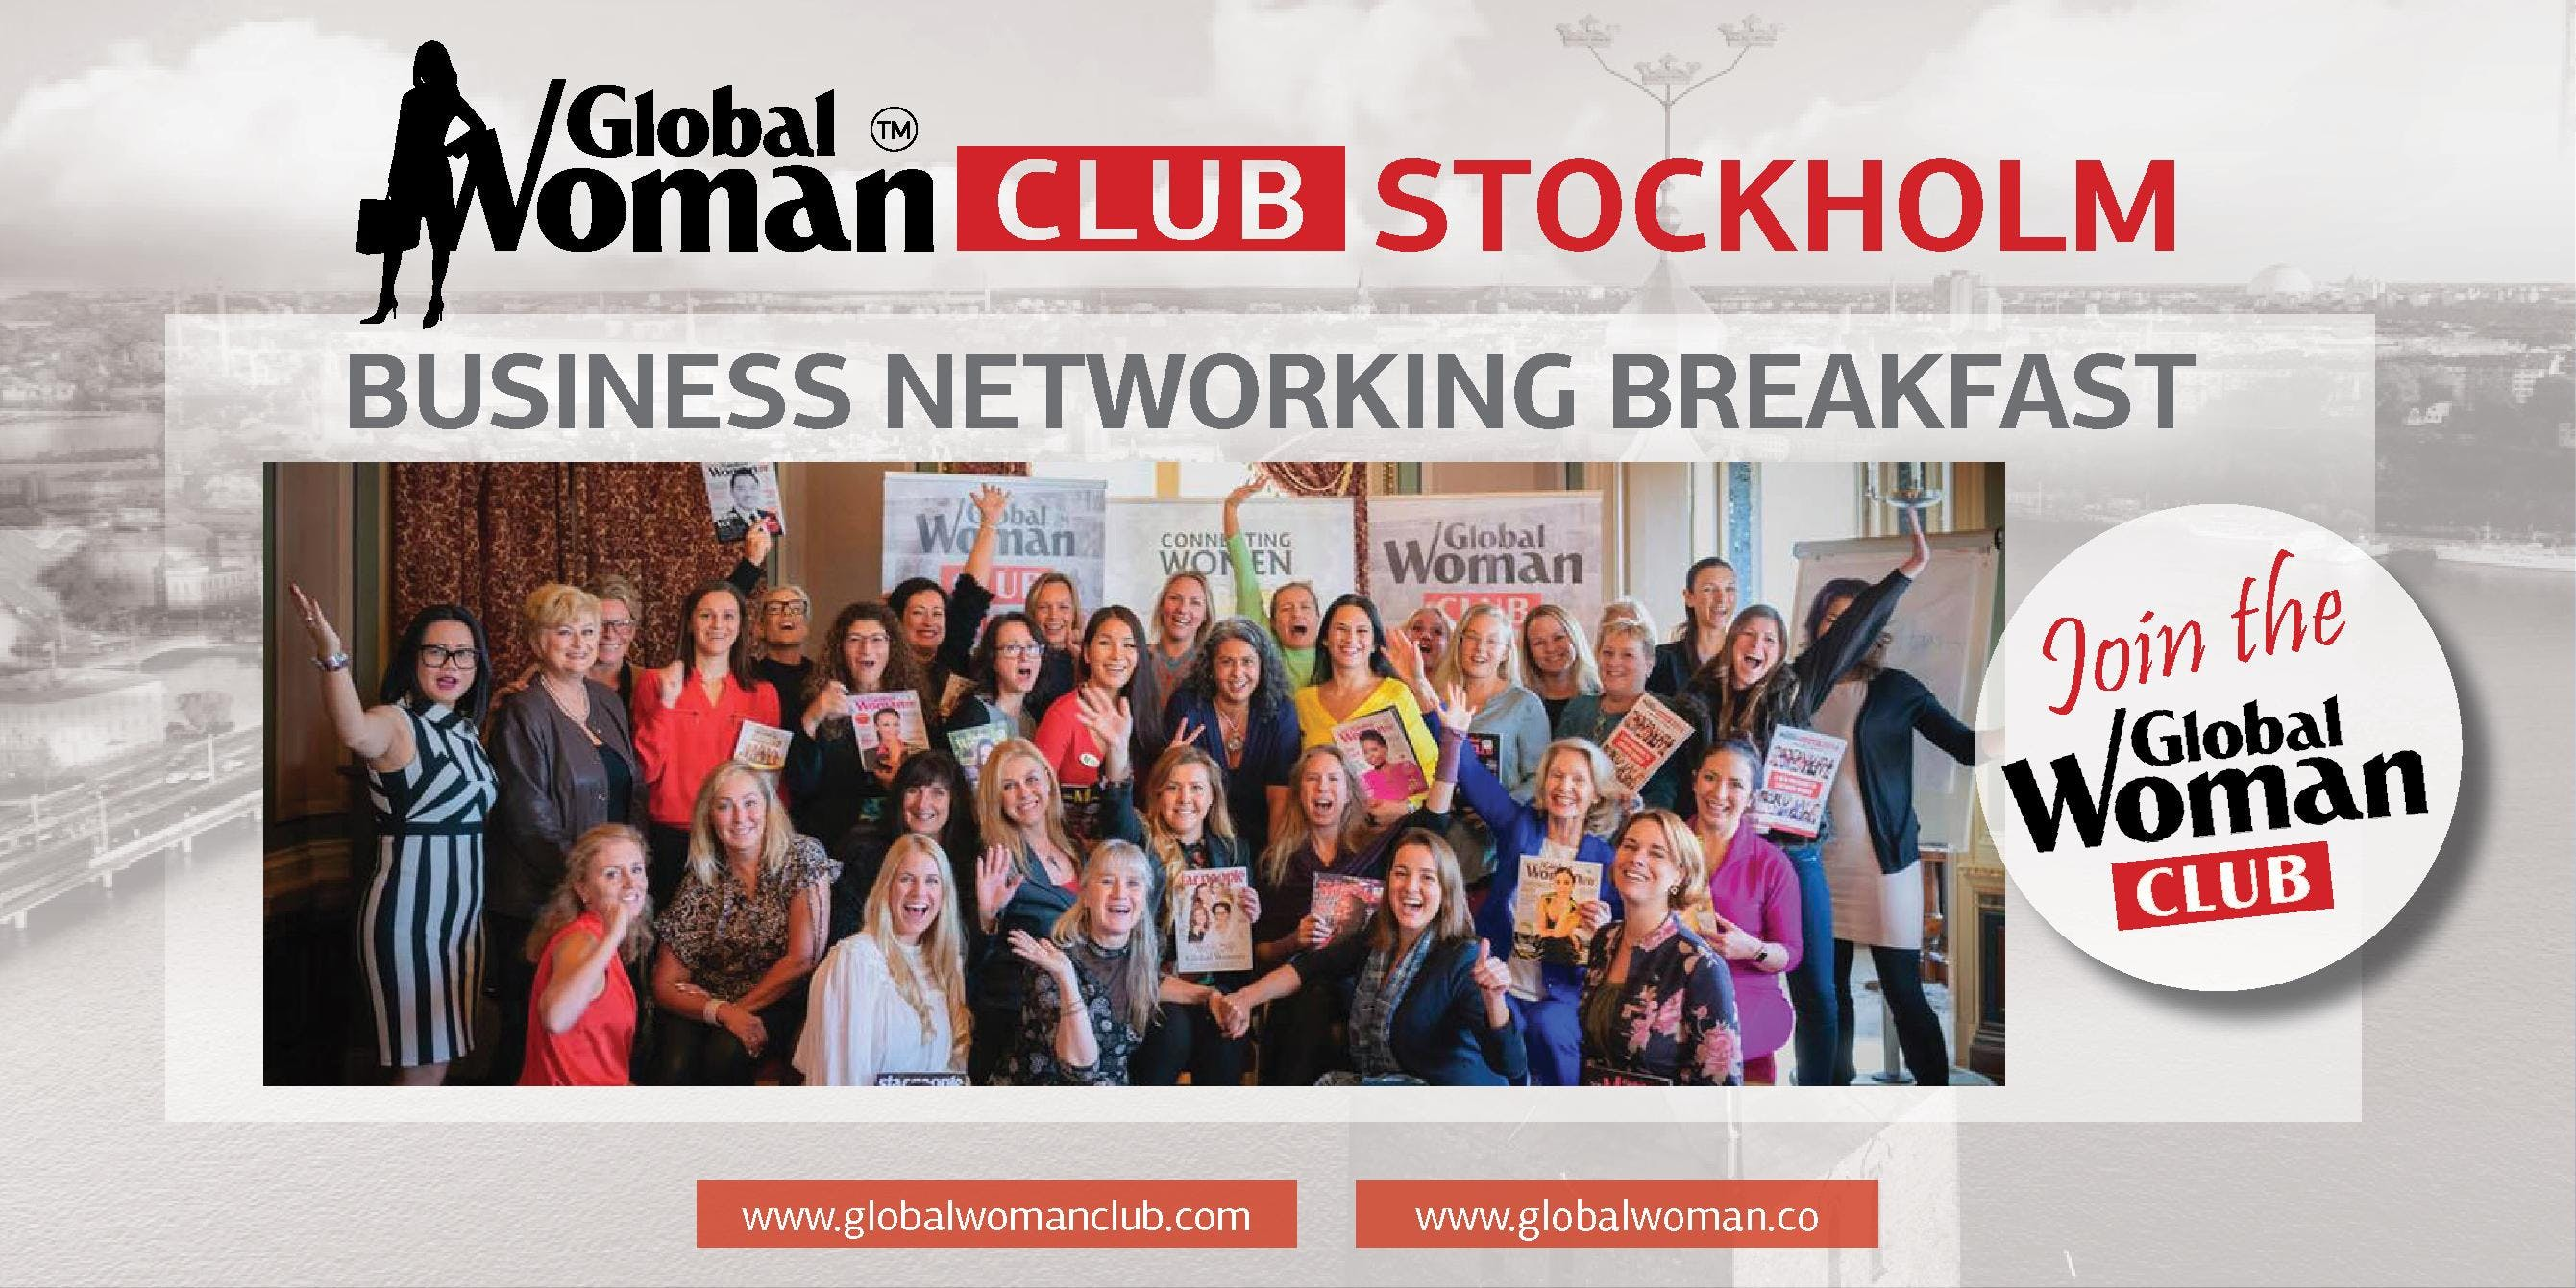 GLOBAL WOMAN CLUB STOCKHOLM BUSINESS NETWORKING BREAKFAST - DECEMBER